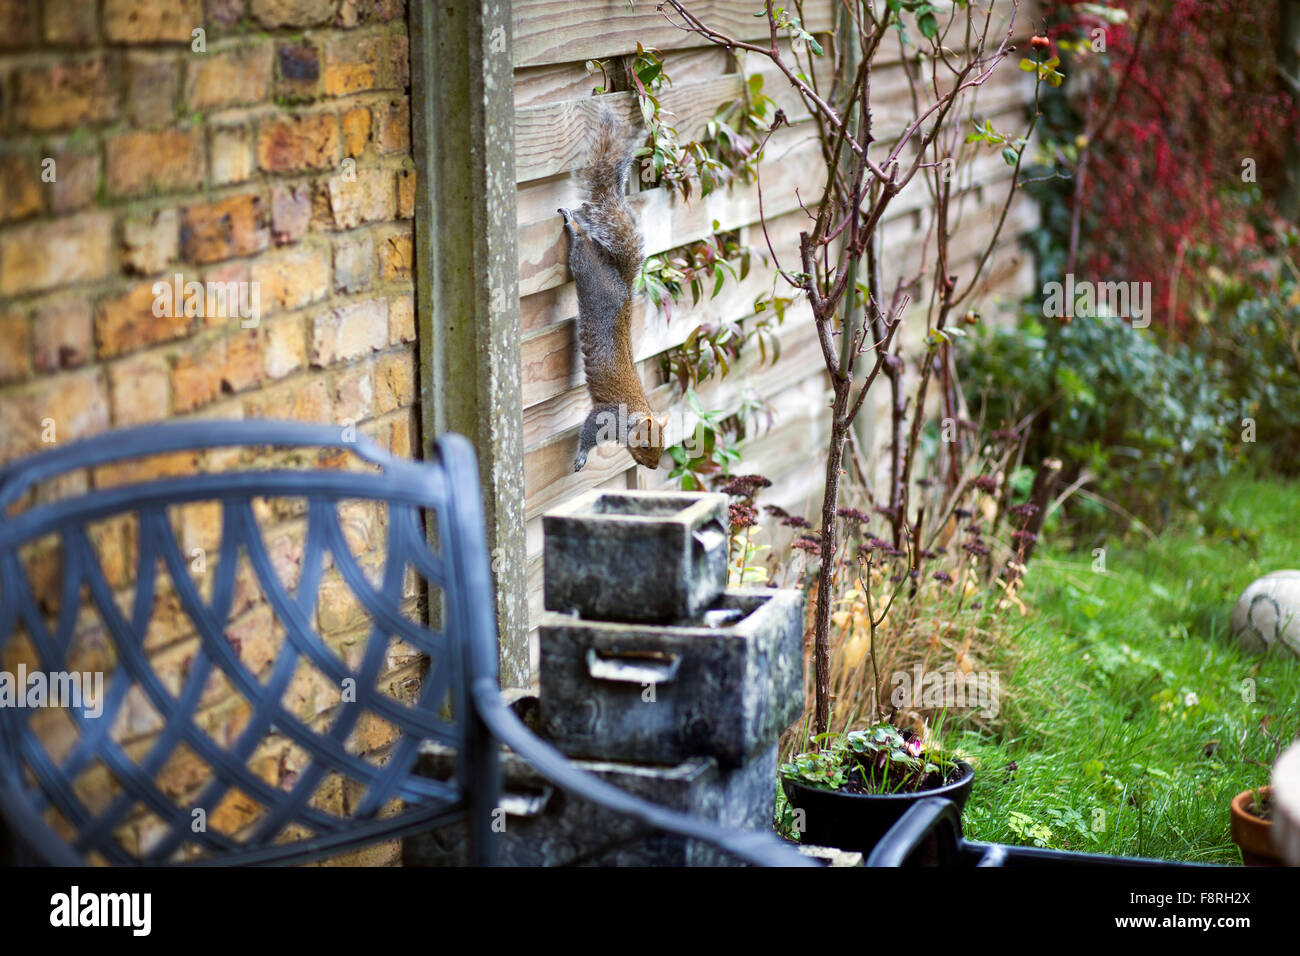 Large water feature stock photos large water feature for Koi pool water gardens blackpool